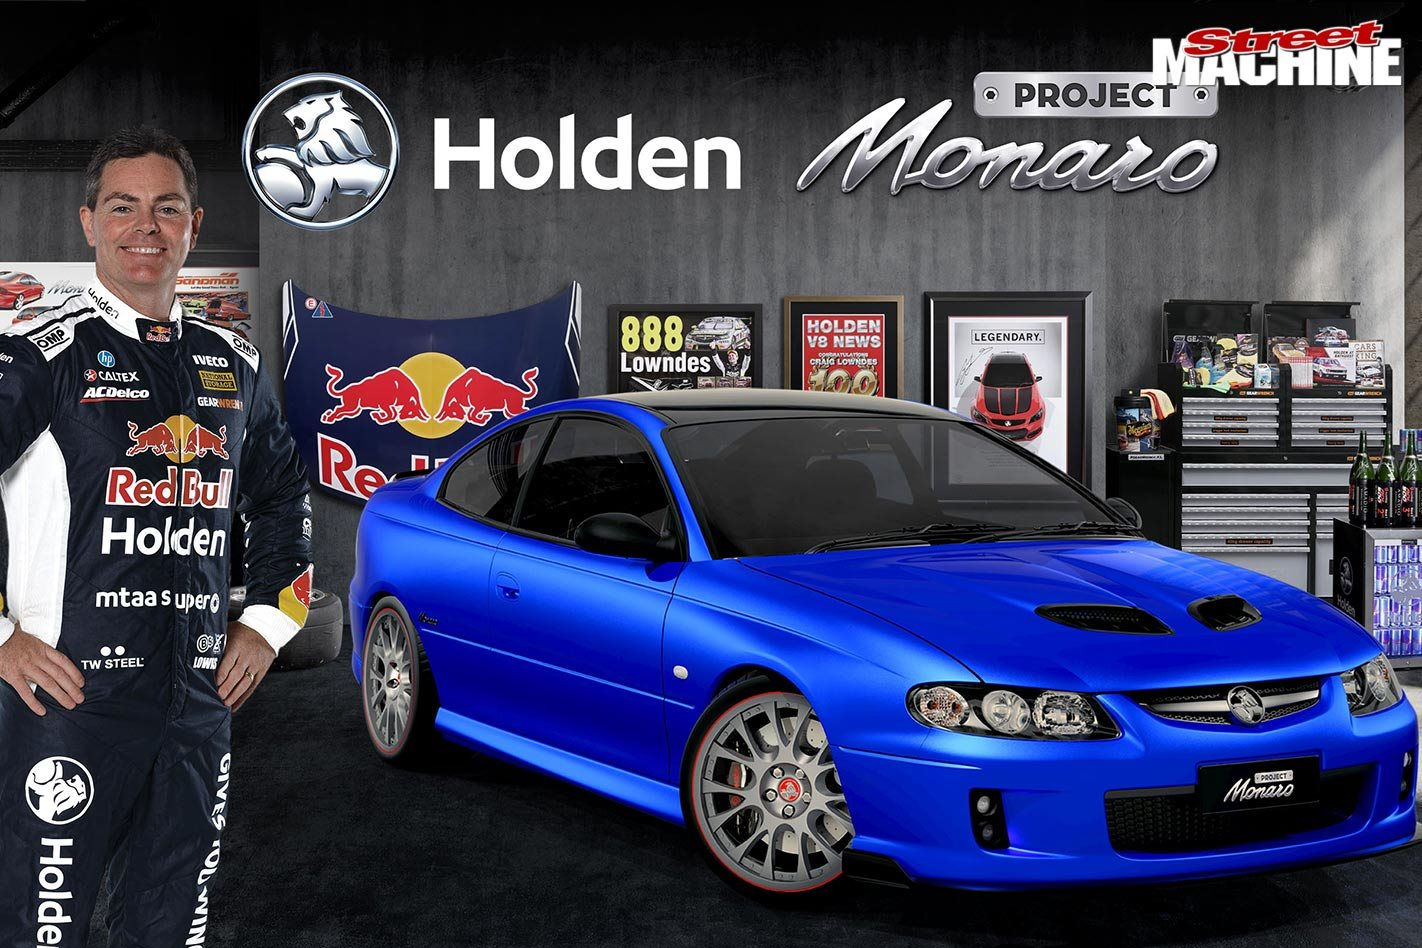 craig lowndes  holden launch project monaro